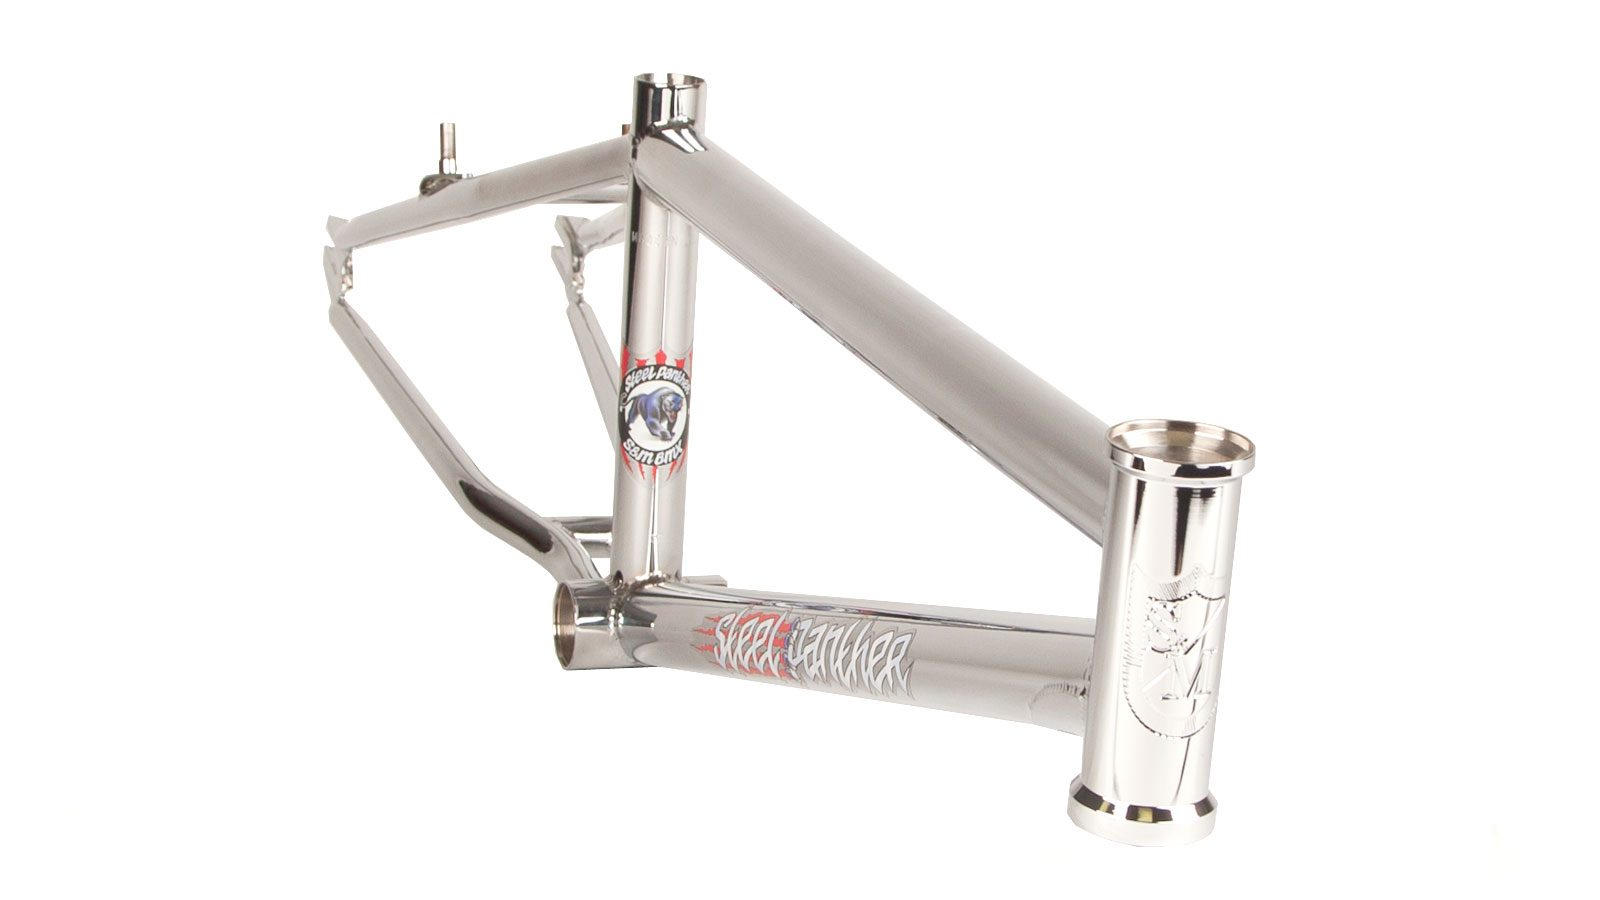 Steel Panther-Chrome BMX frame